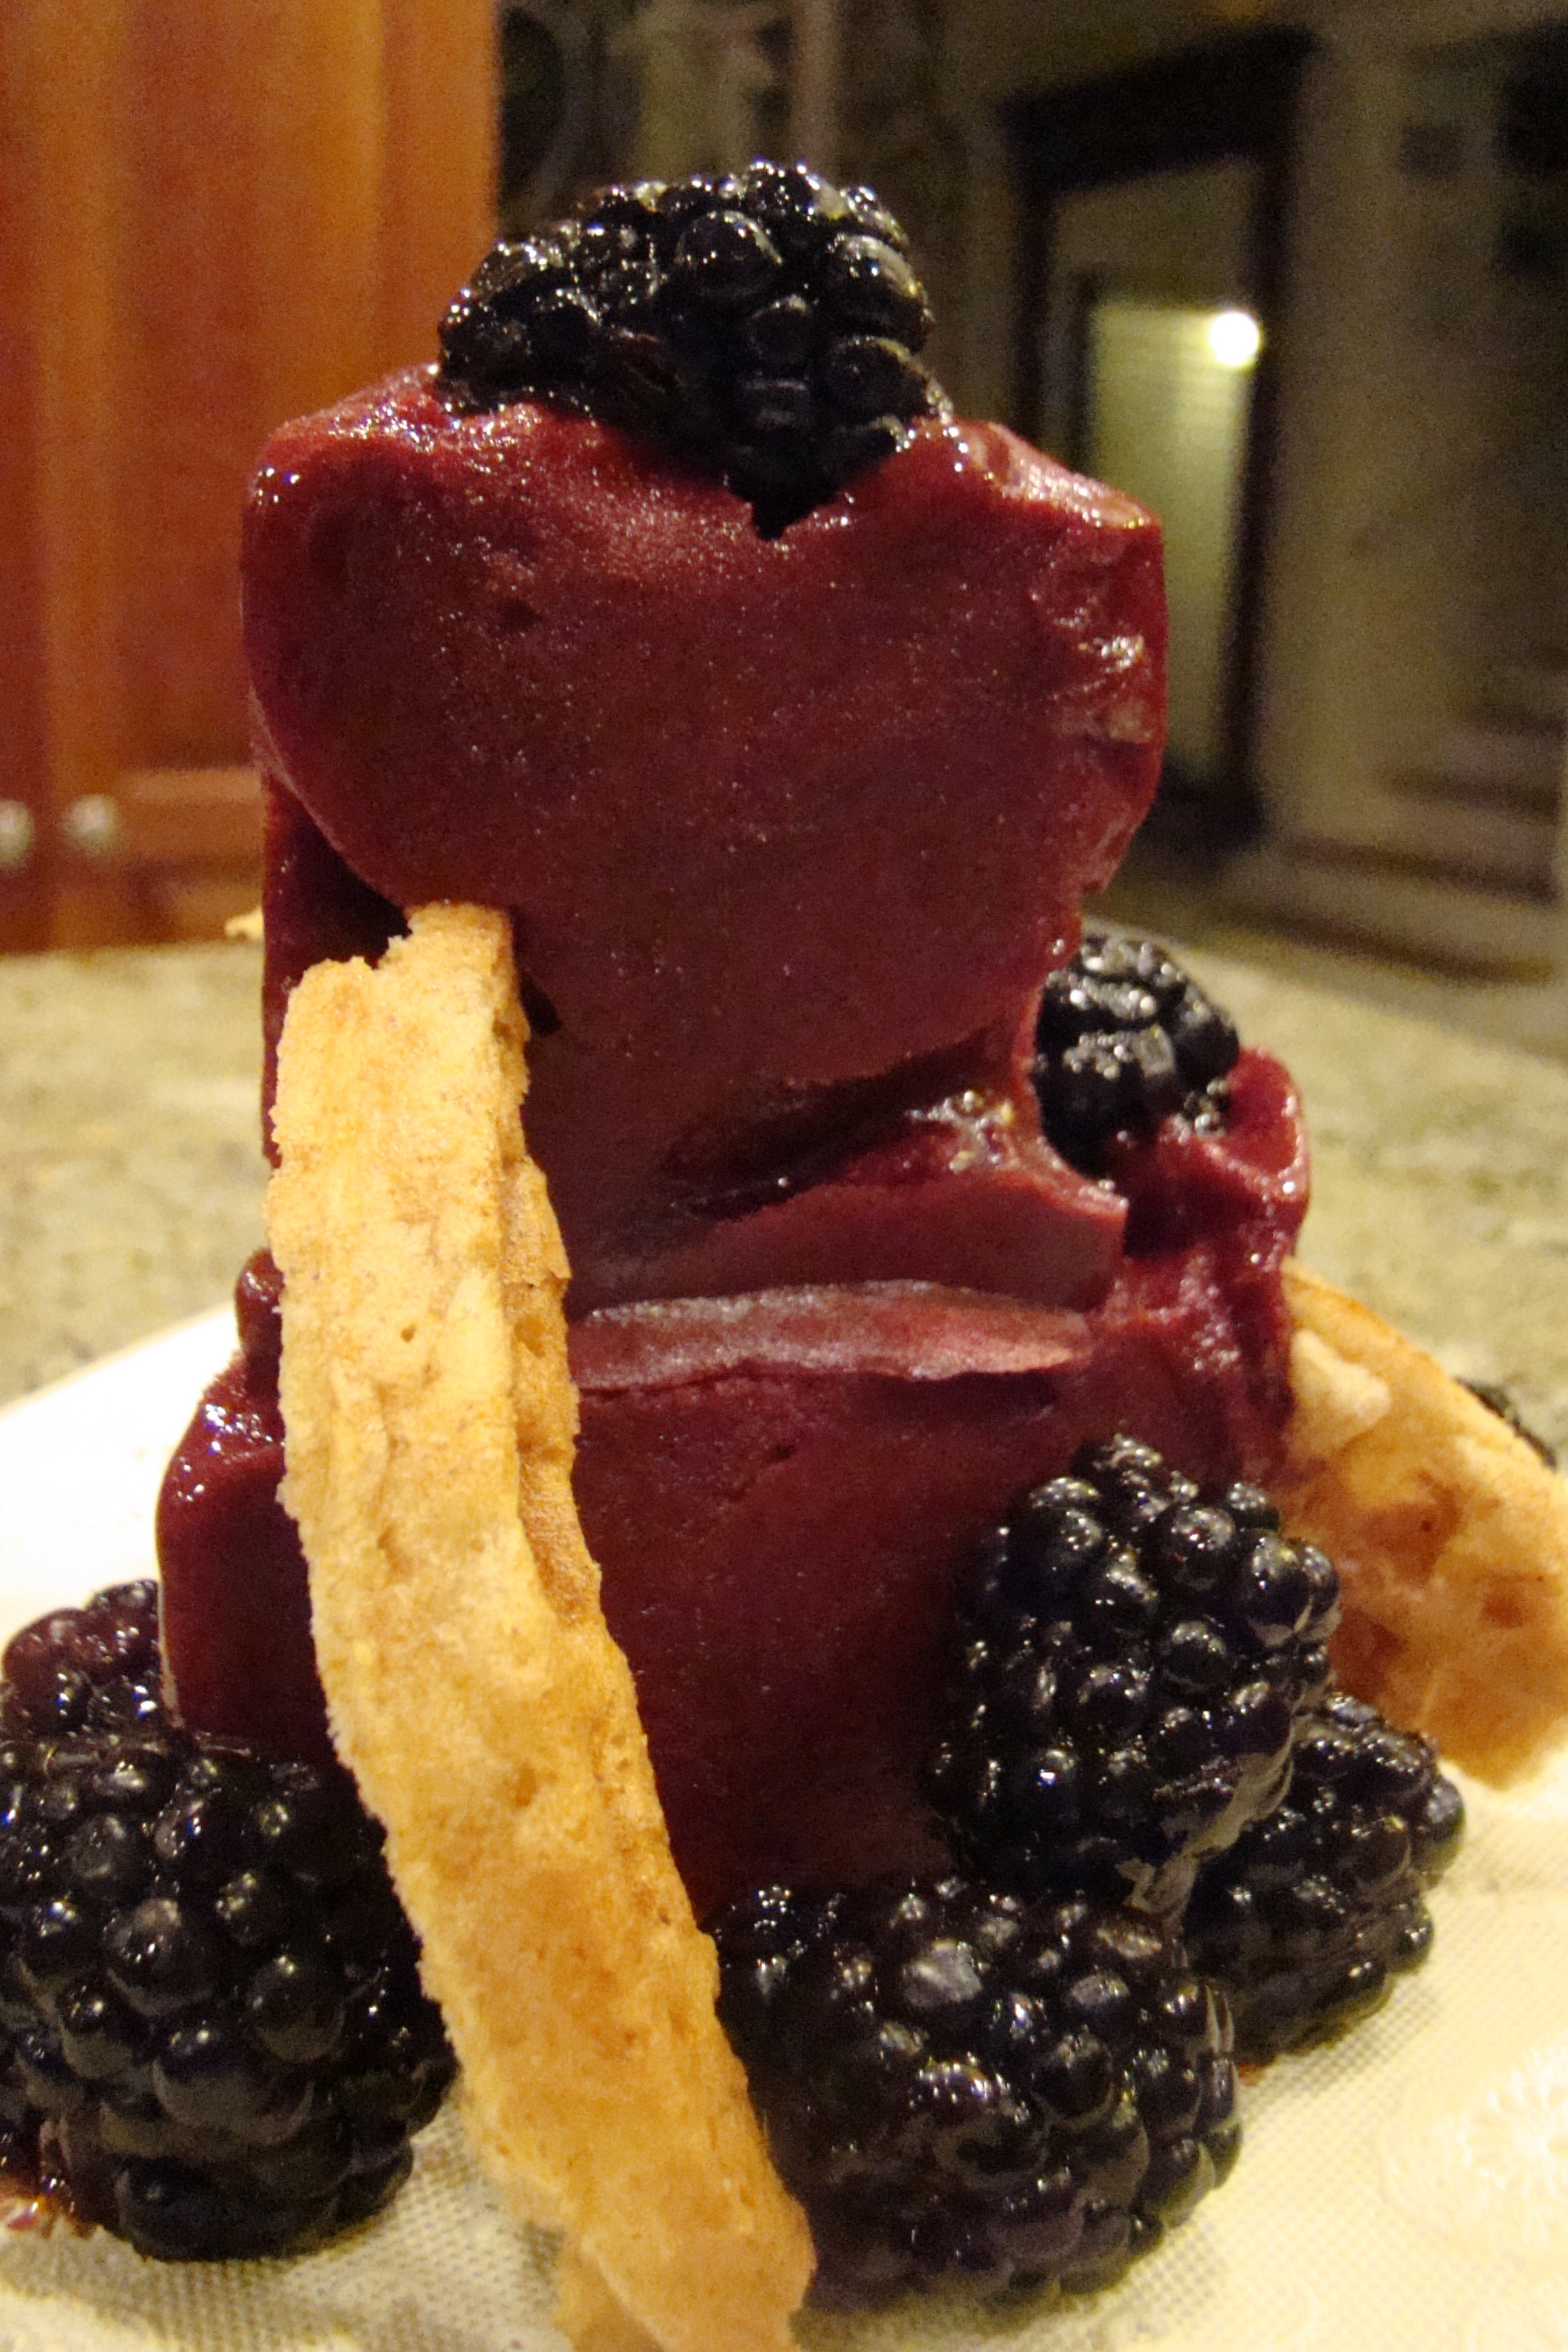 File:Blackberry Merlot Sorbet (3440810512).jpg - Wikimedia Commons